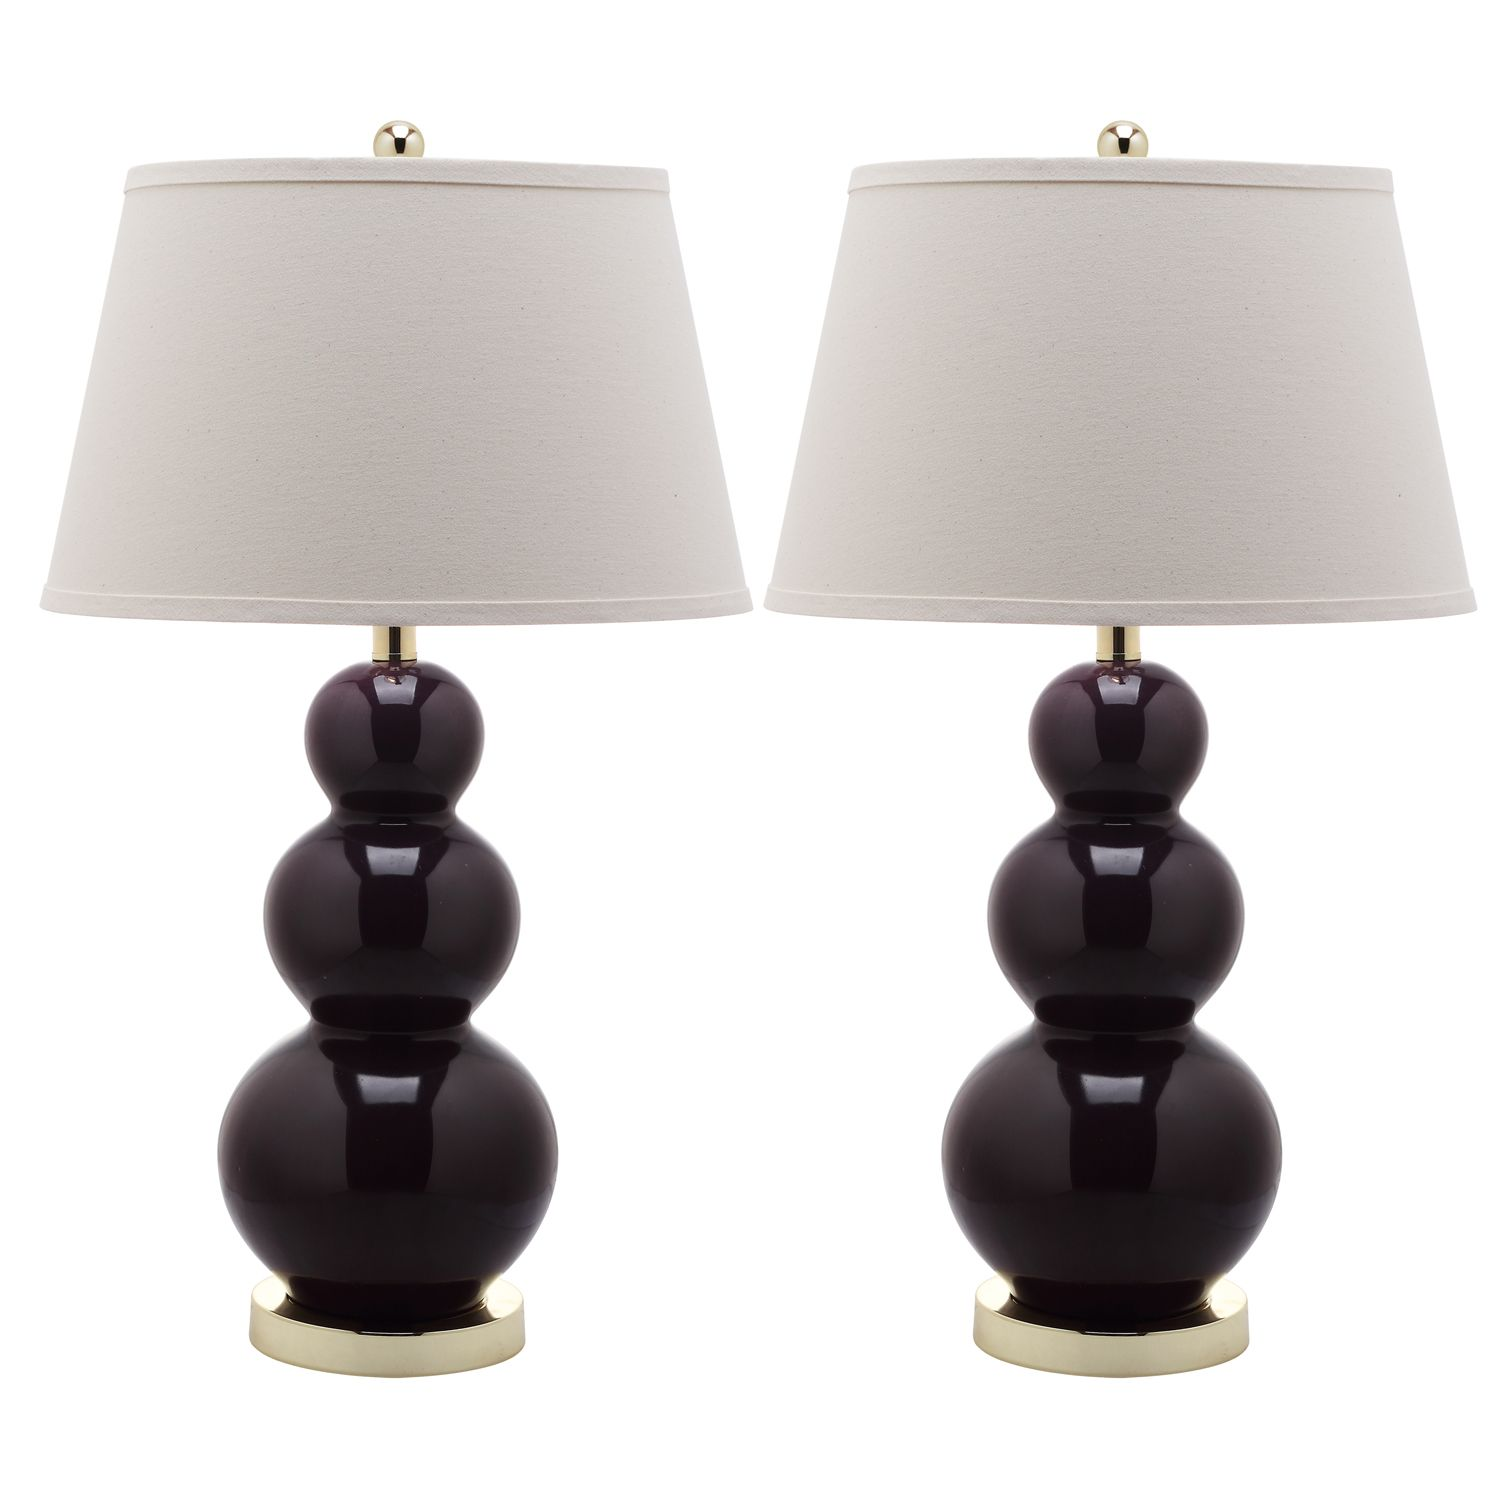 Safavieh 2 Pc. Pamela Triple Gourd Table Lamp Set